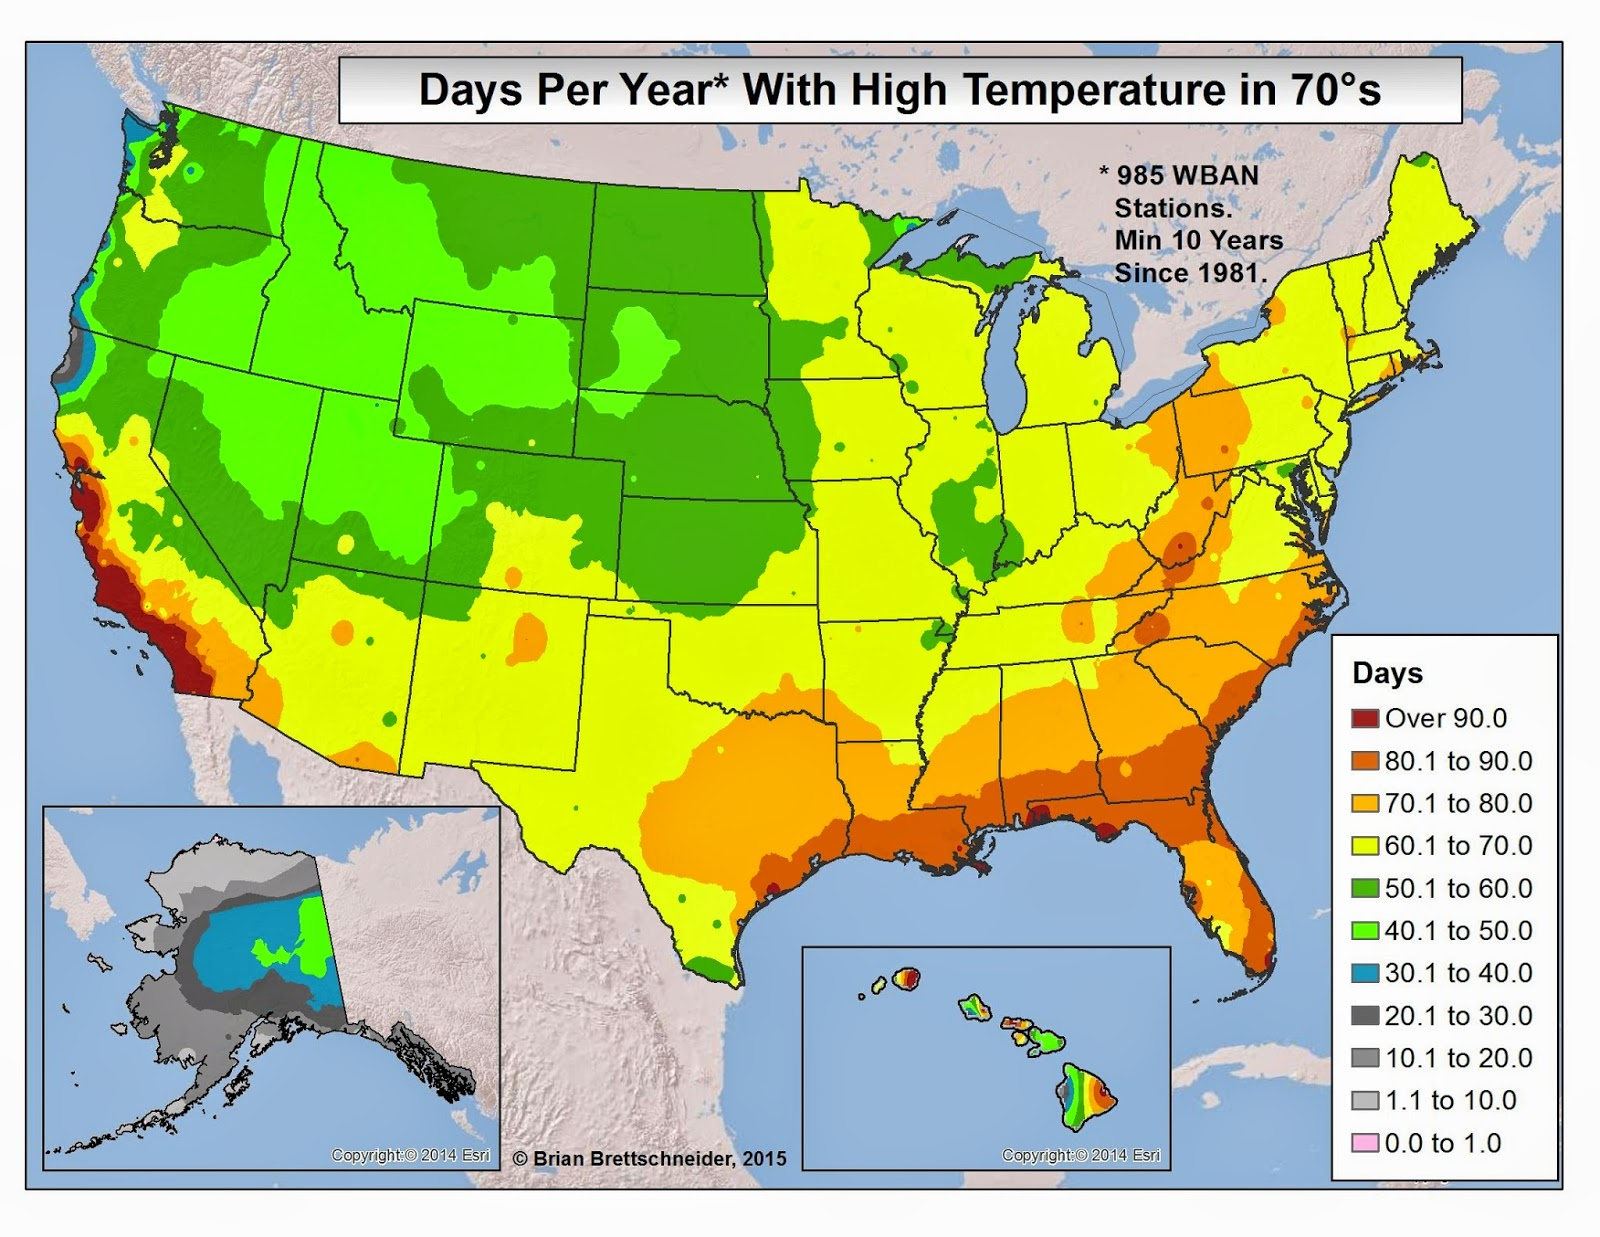 Brian Bs Climate Blog US High Temperature Categories - Us weather map high temperatures